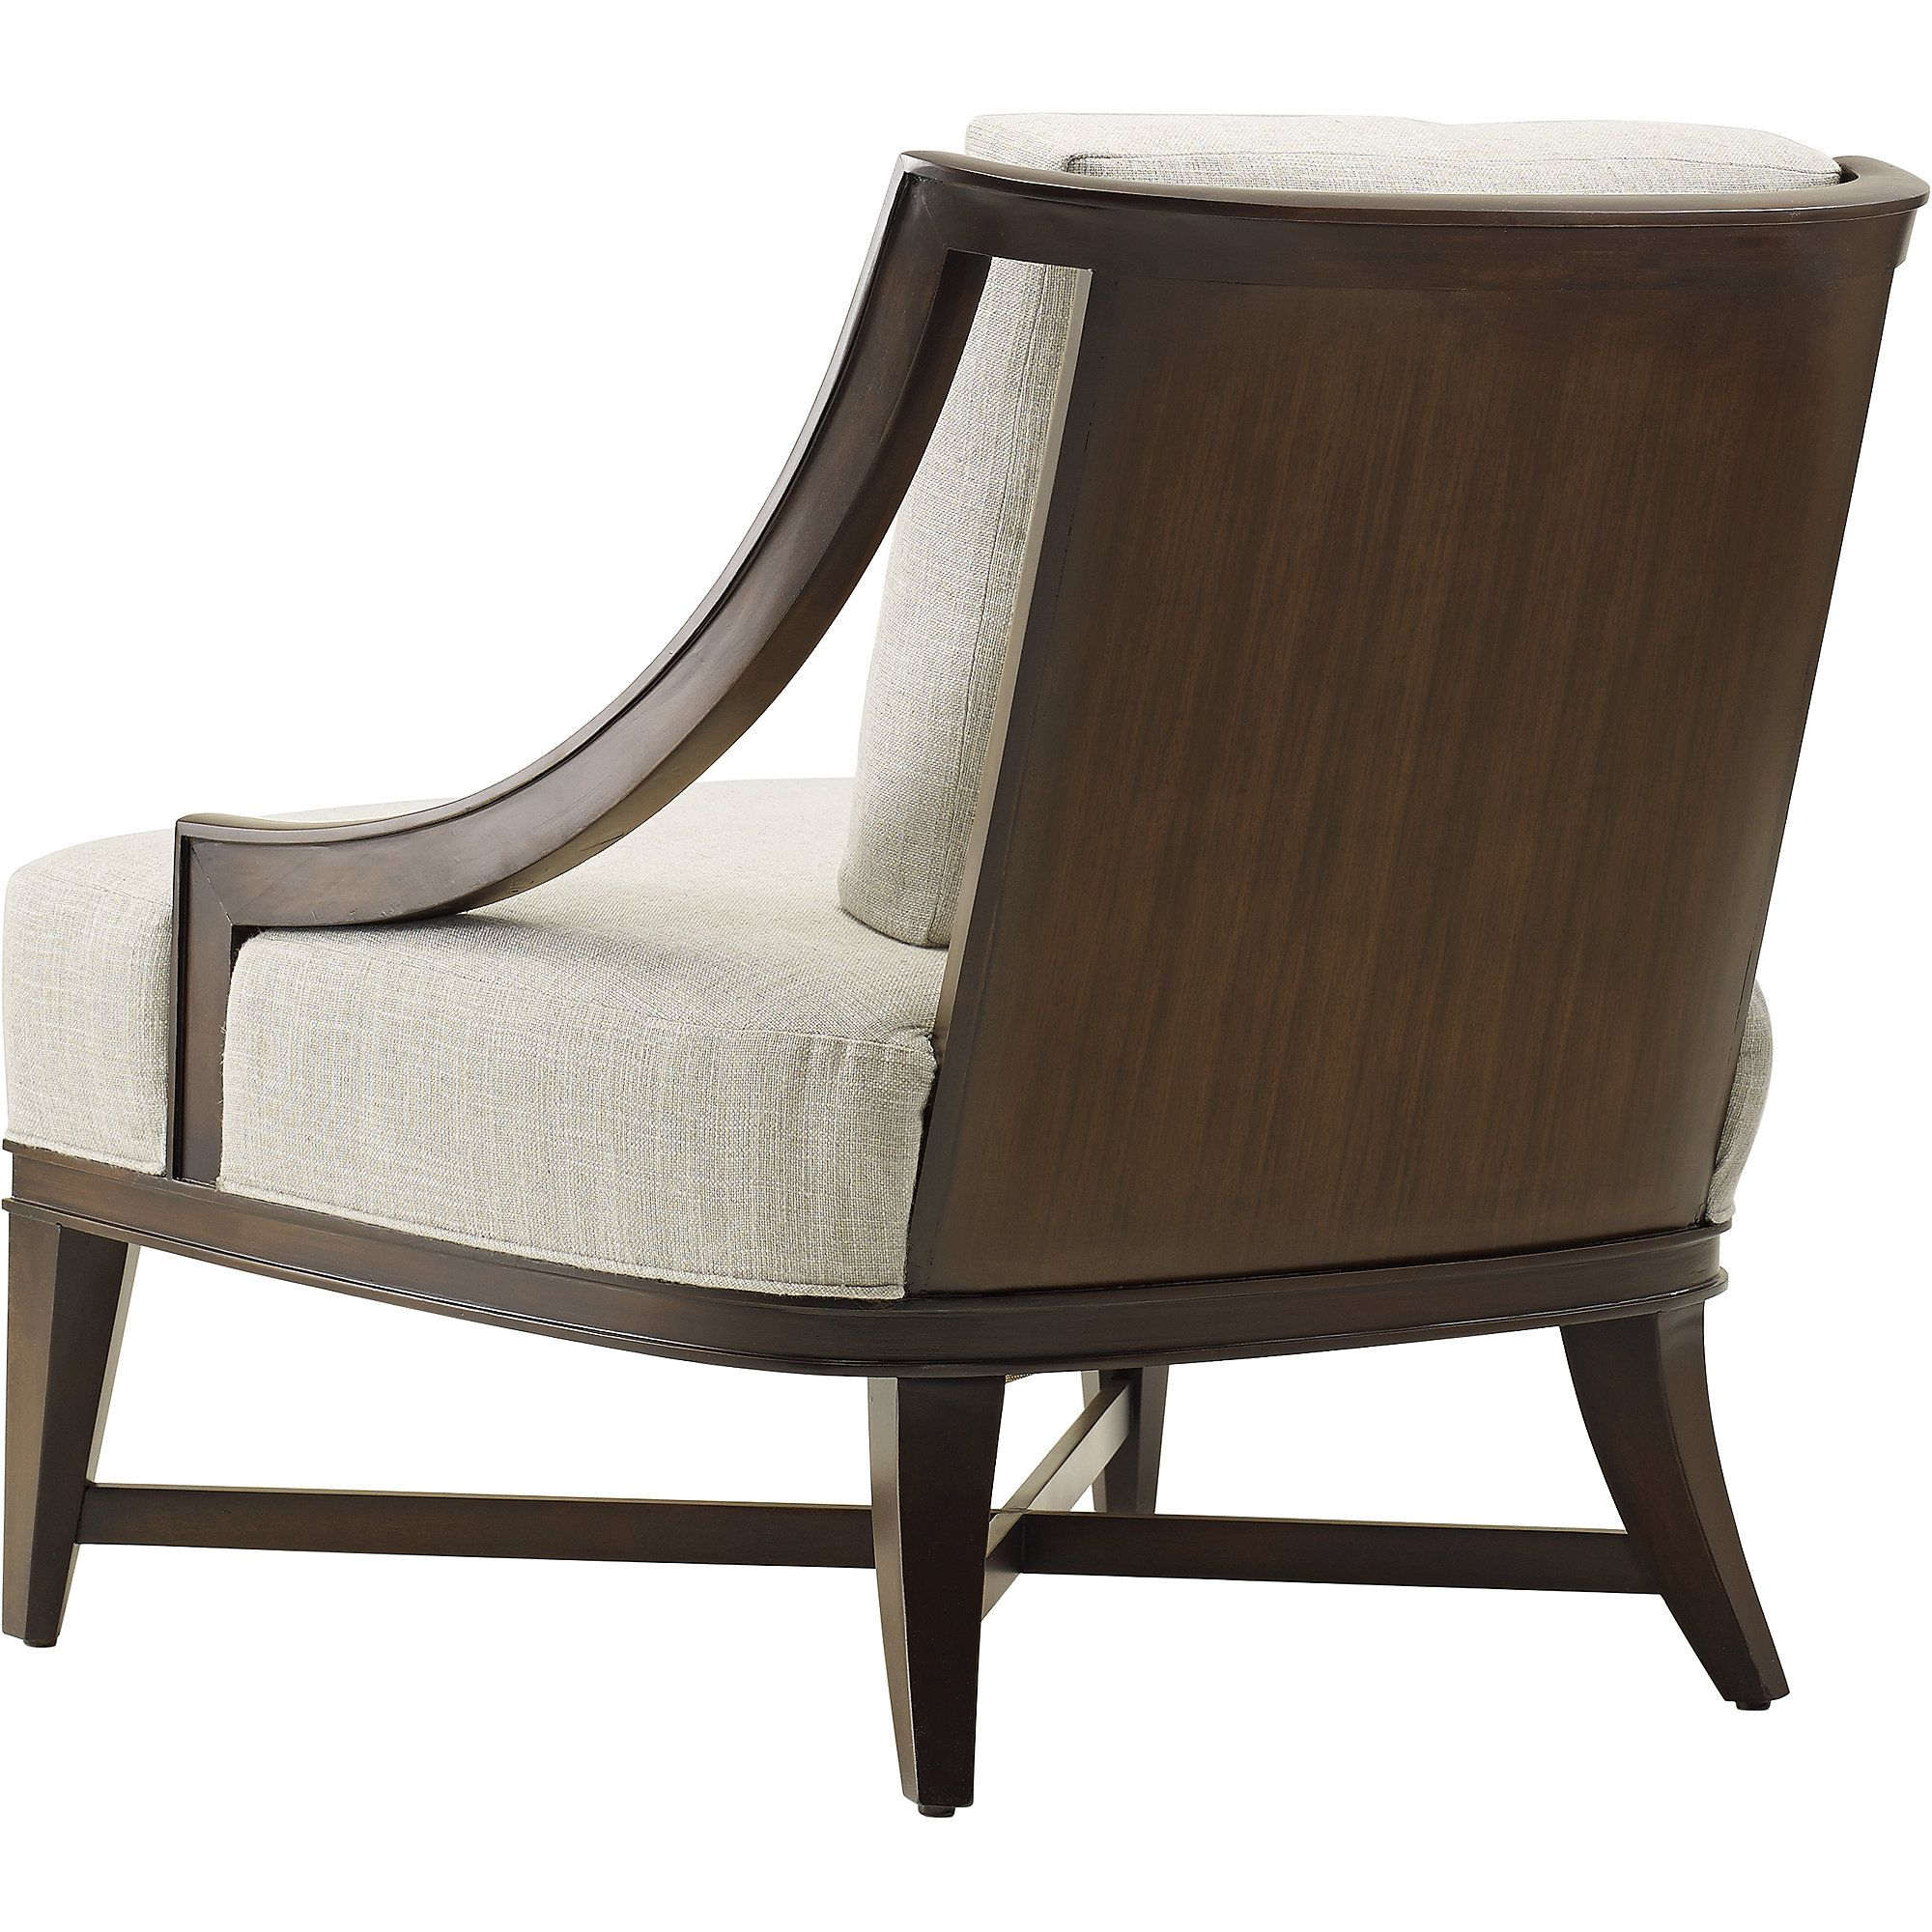 Nob Hill Lounge Chair | Barbara Barry Collection | Baker Furniture